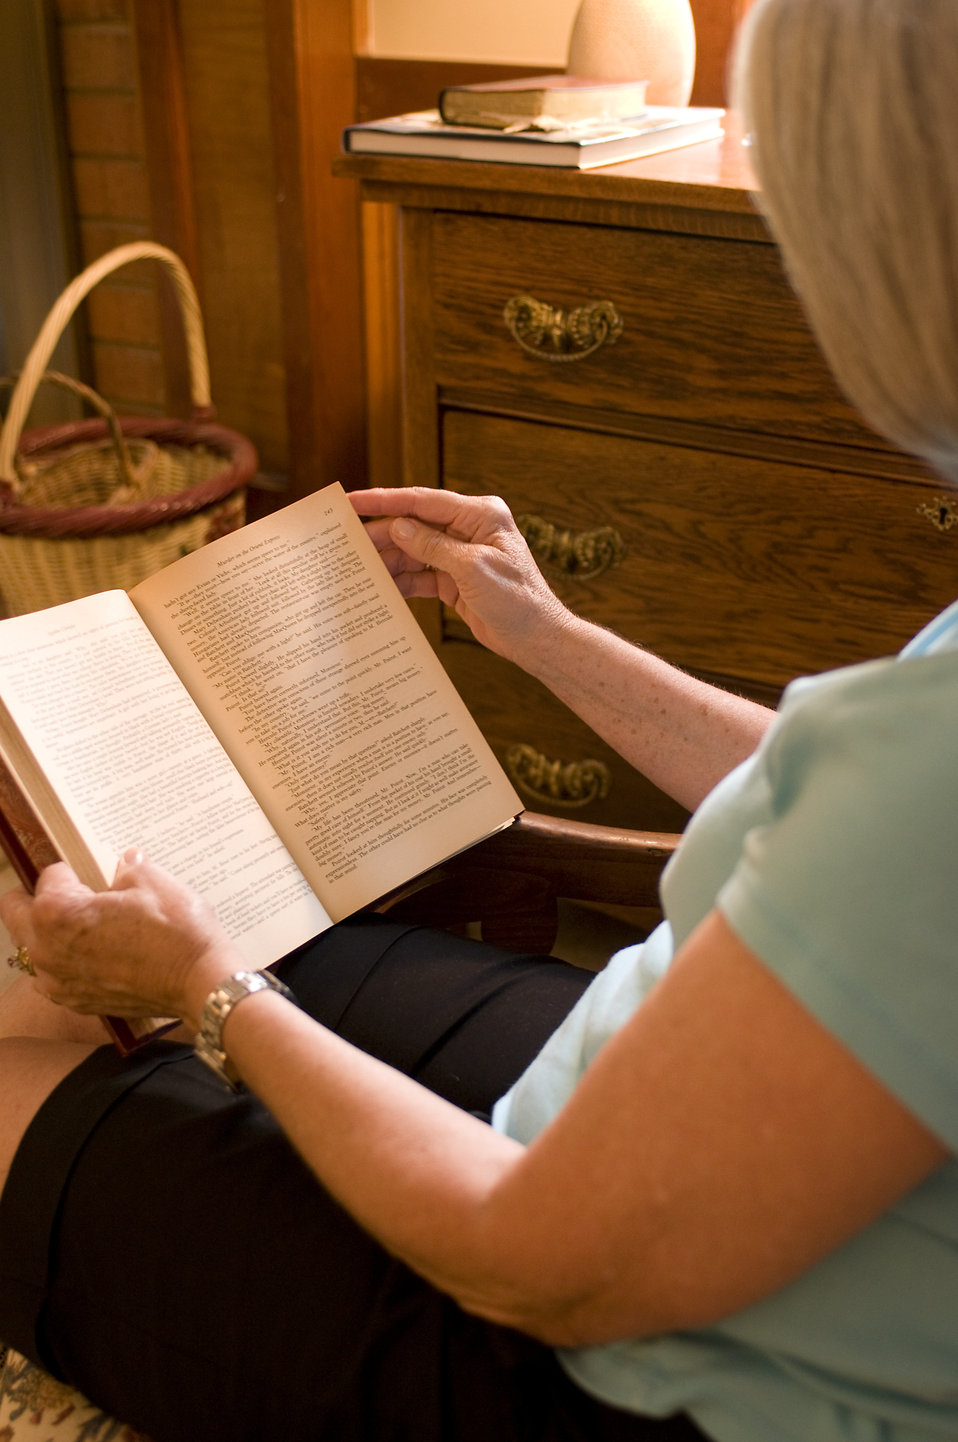 A woman reading a book in her home : Free Stock Photo